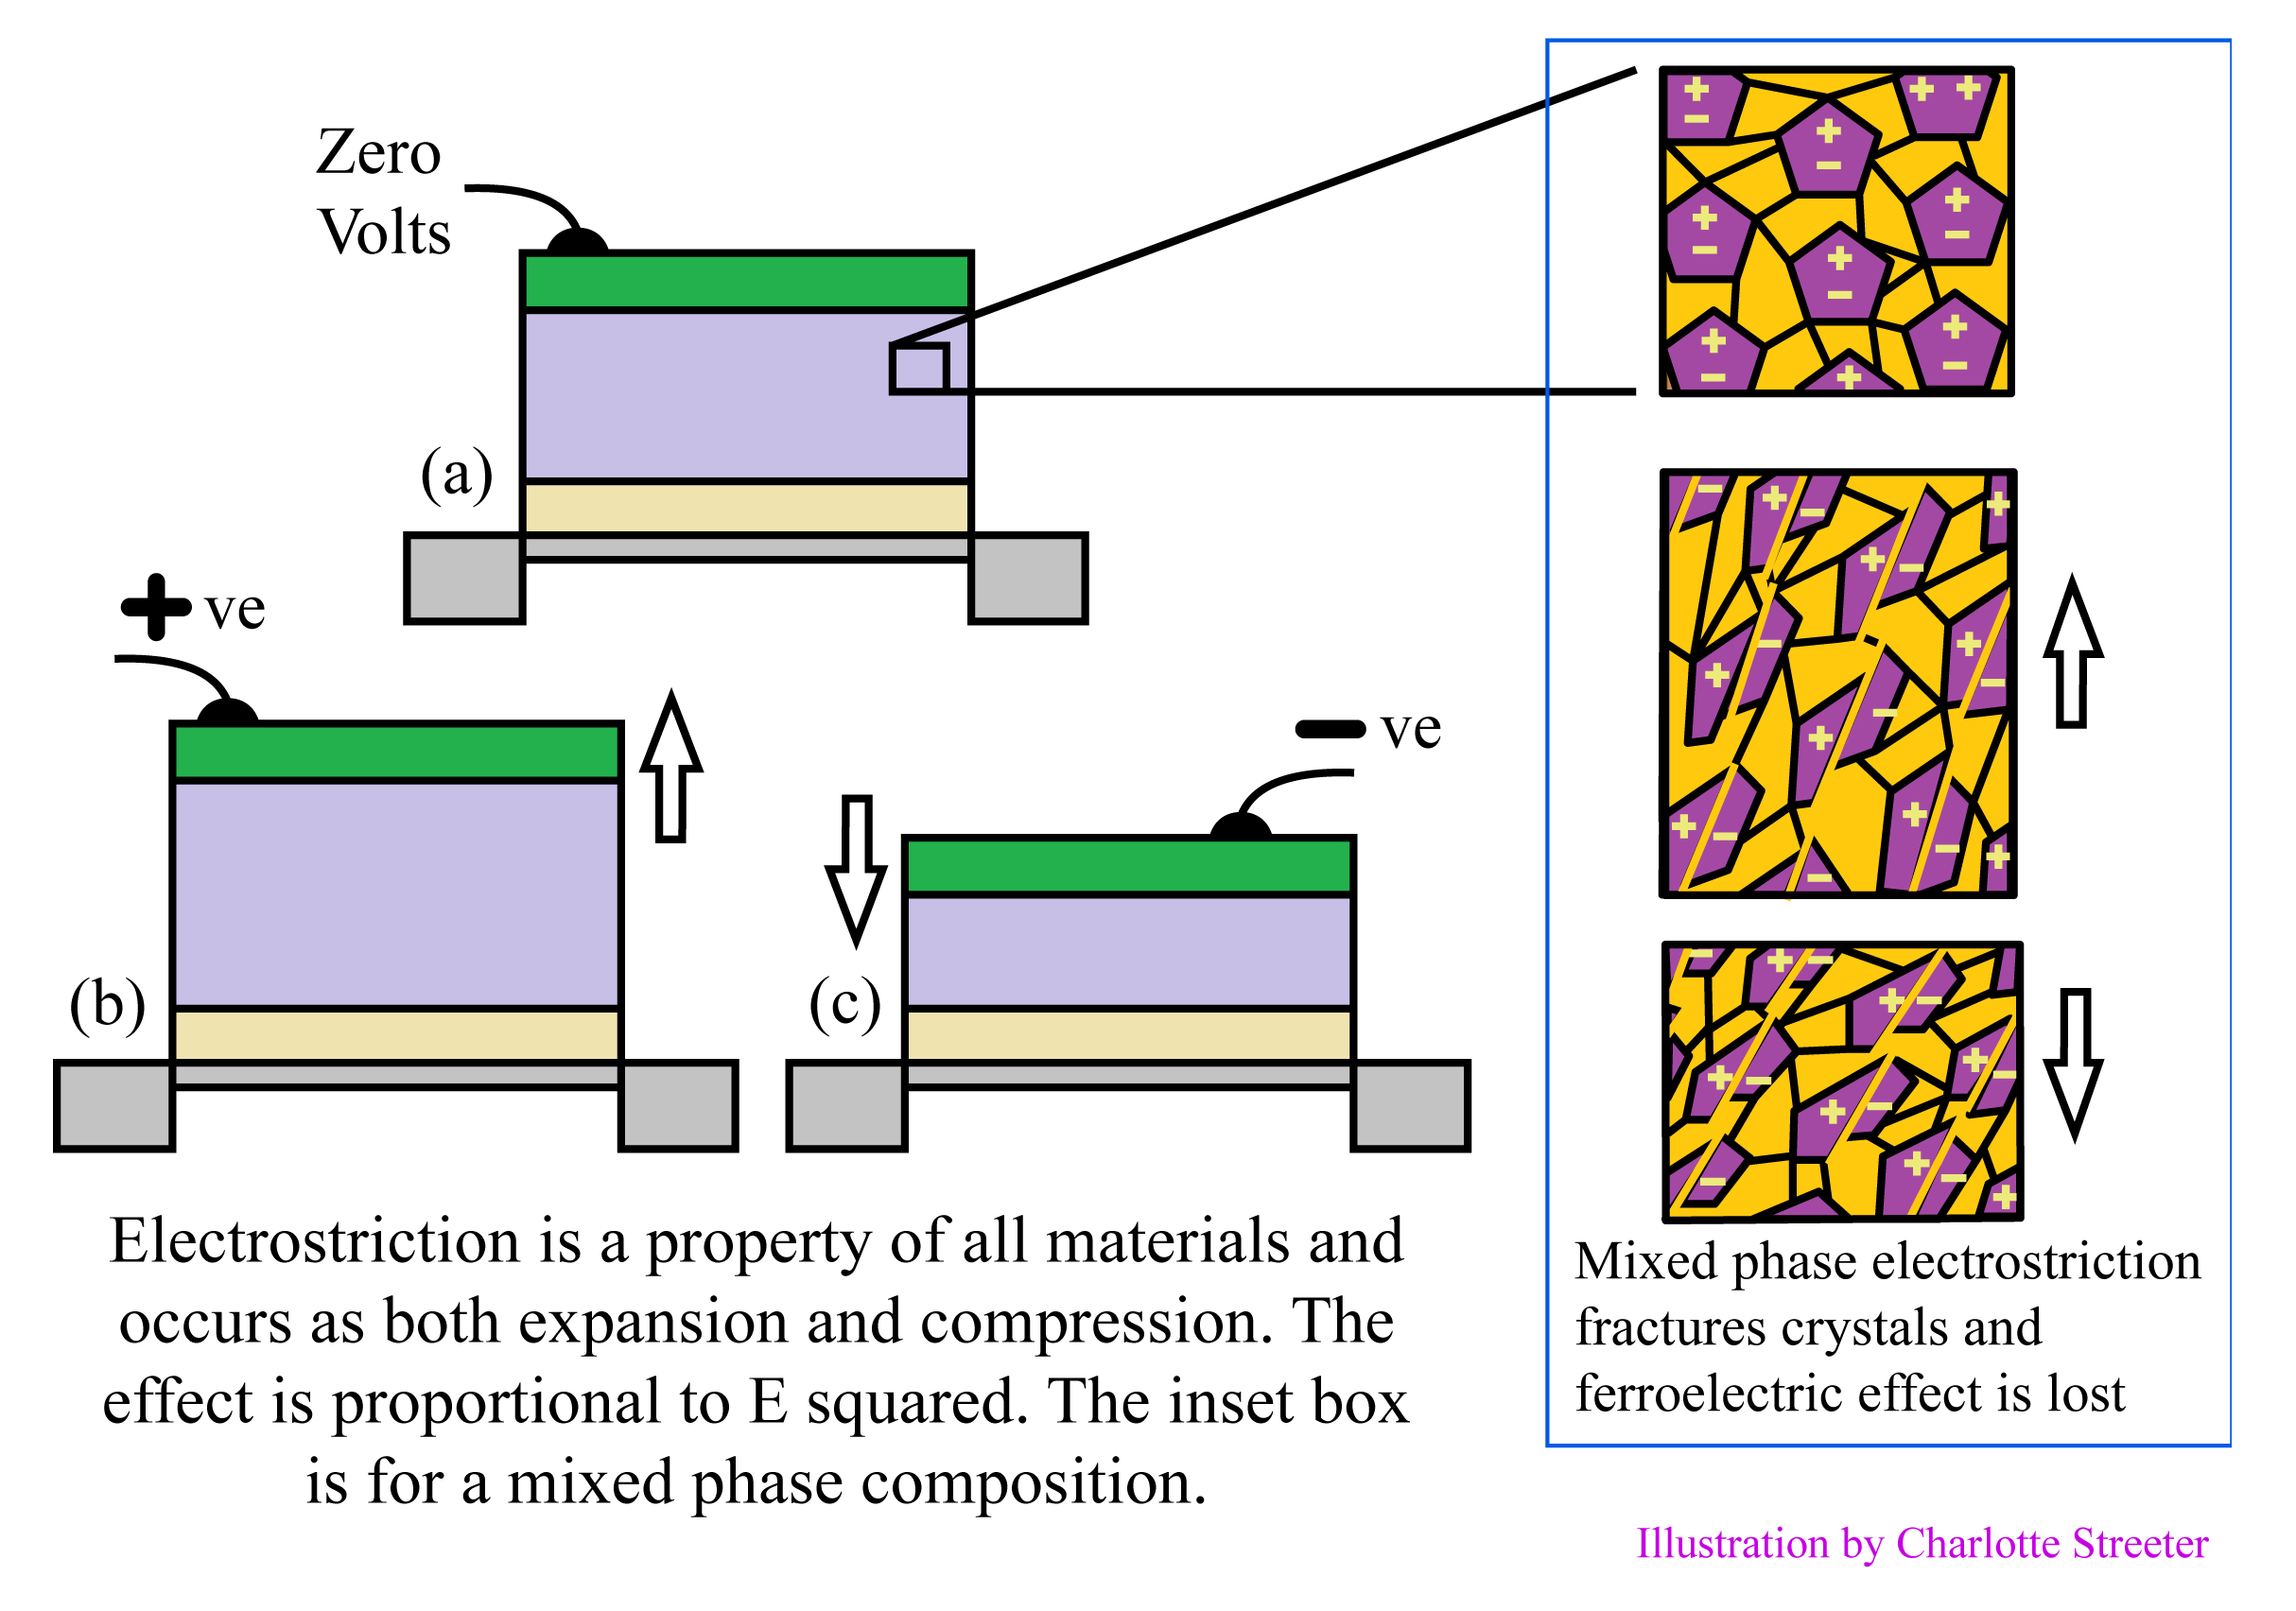 Cross sections of cells whose heights are compressed or extended, and diagrams of grains subject to electrostriction